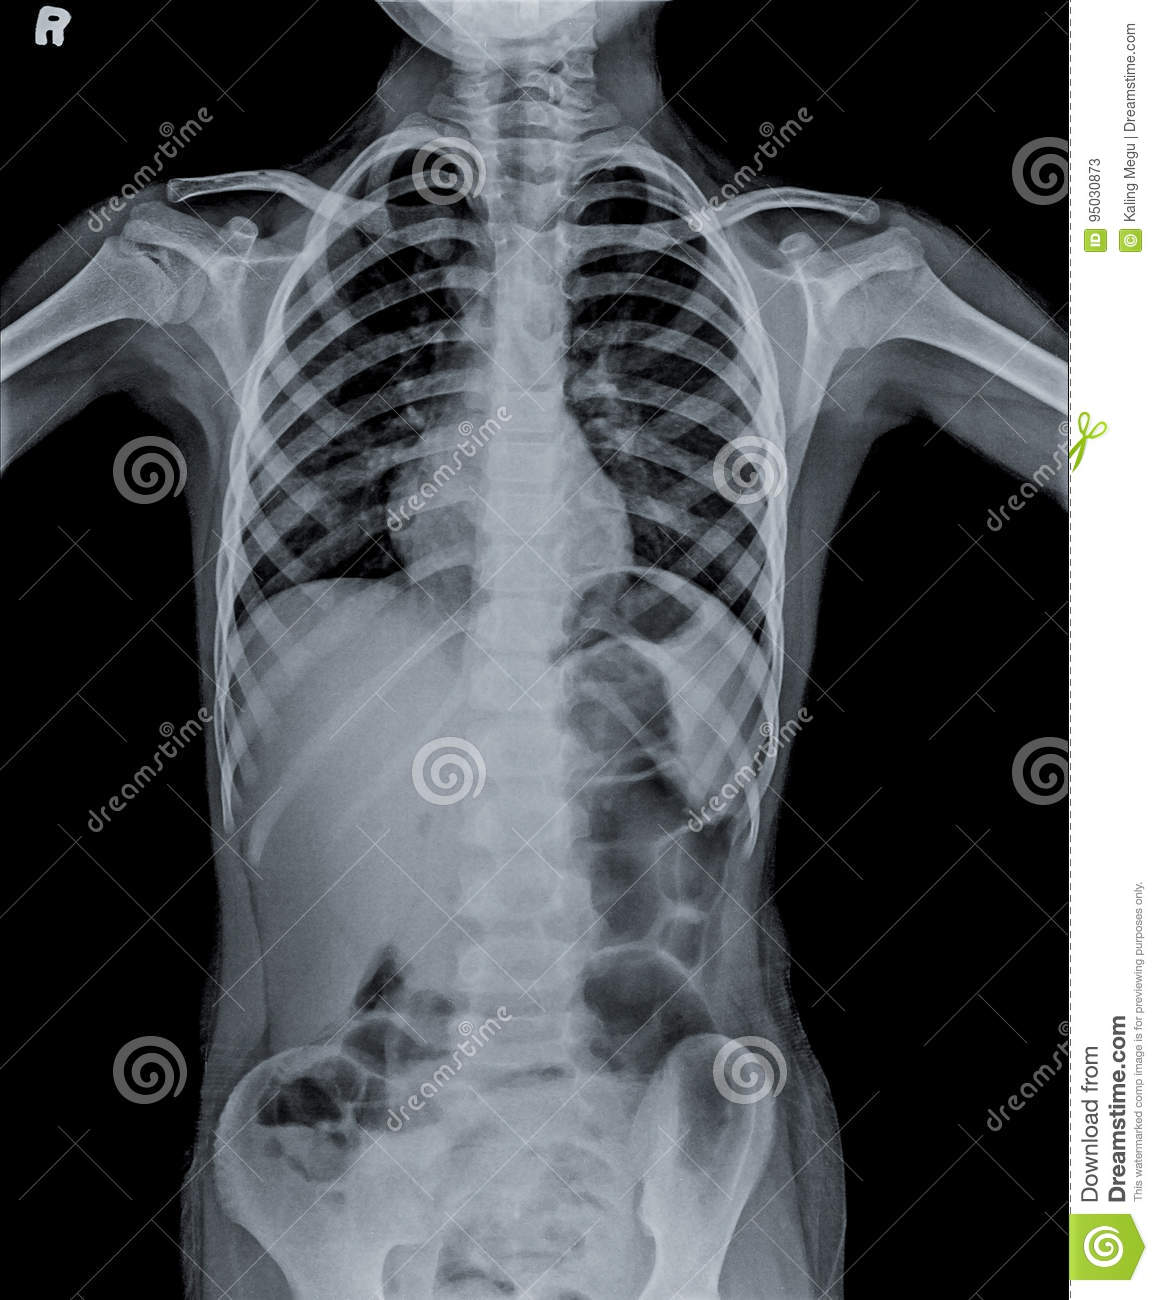 Normal Chest X Ray Of Human Child Stock Image